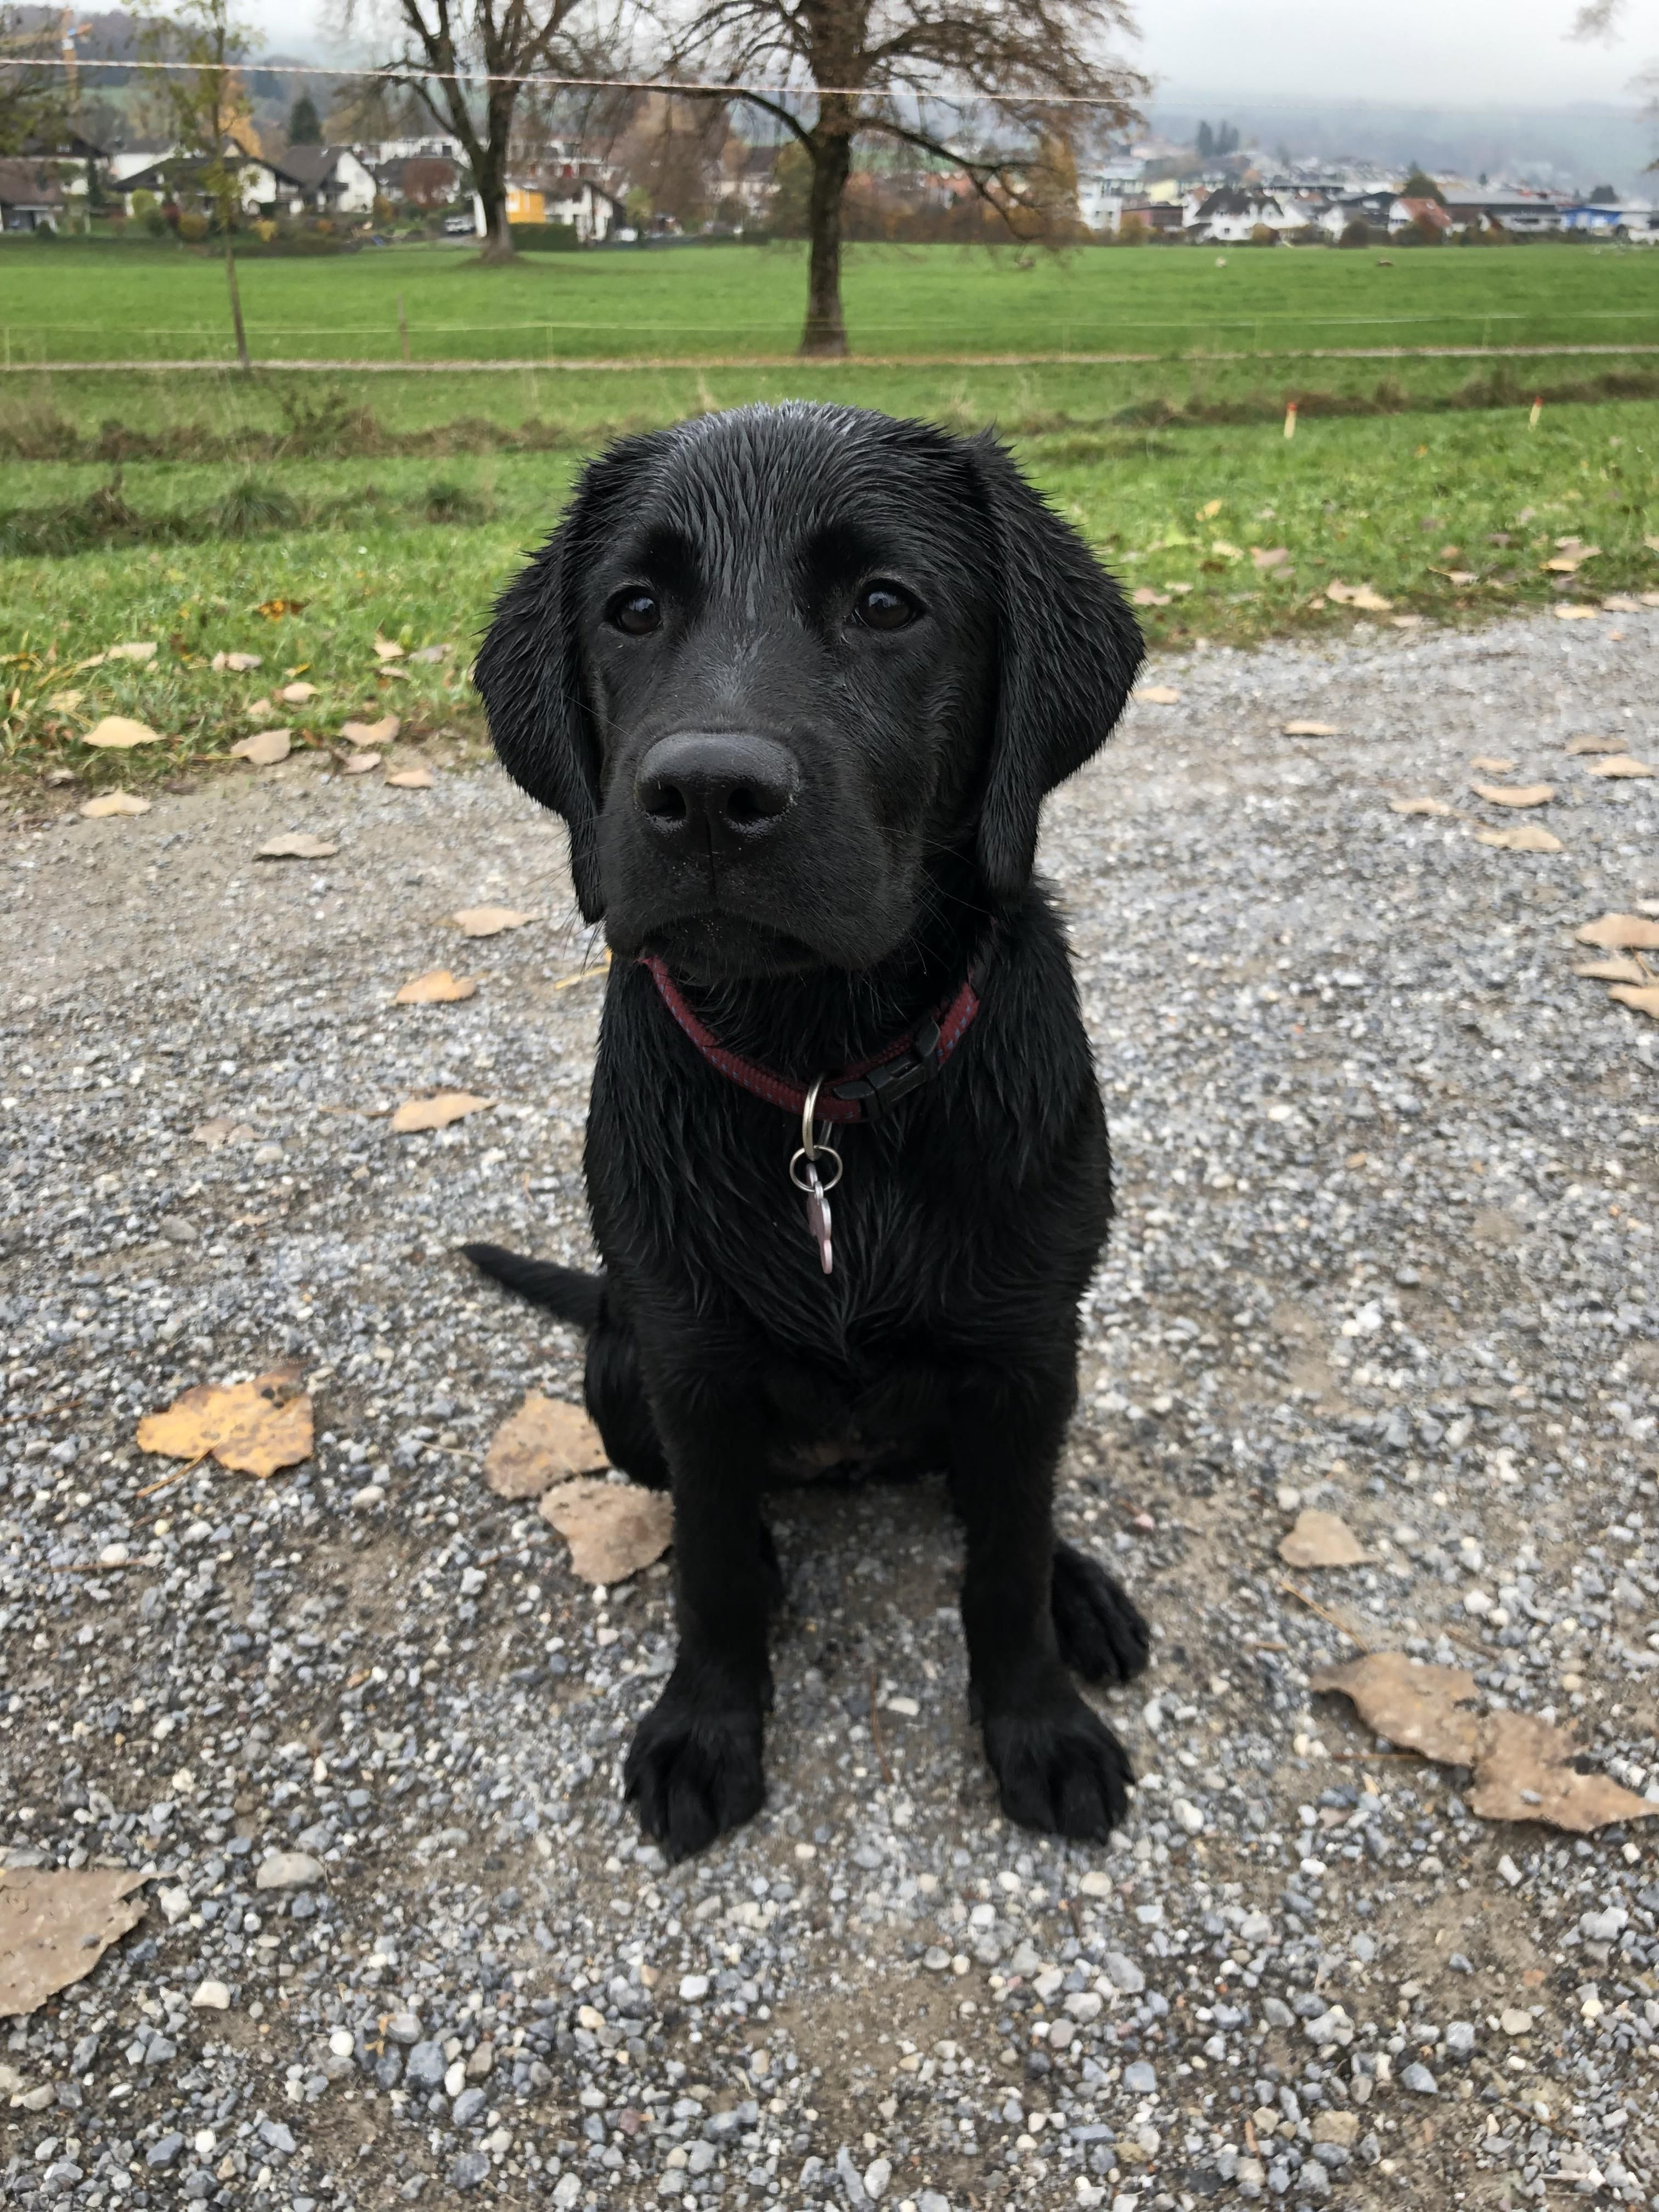 This Is My Almost 5 Month Old Lab Isnt She A Beaut Please Donate